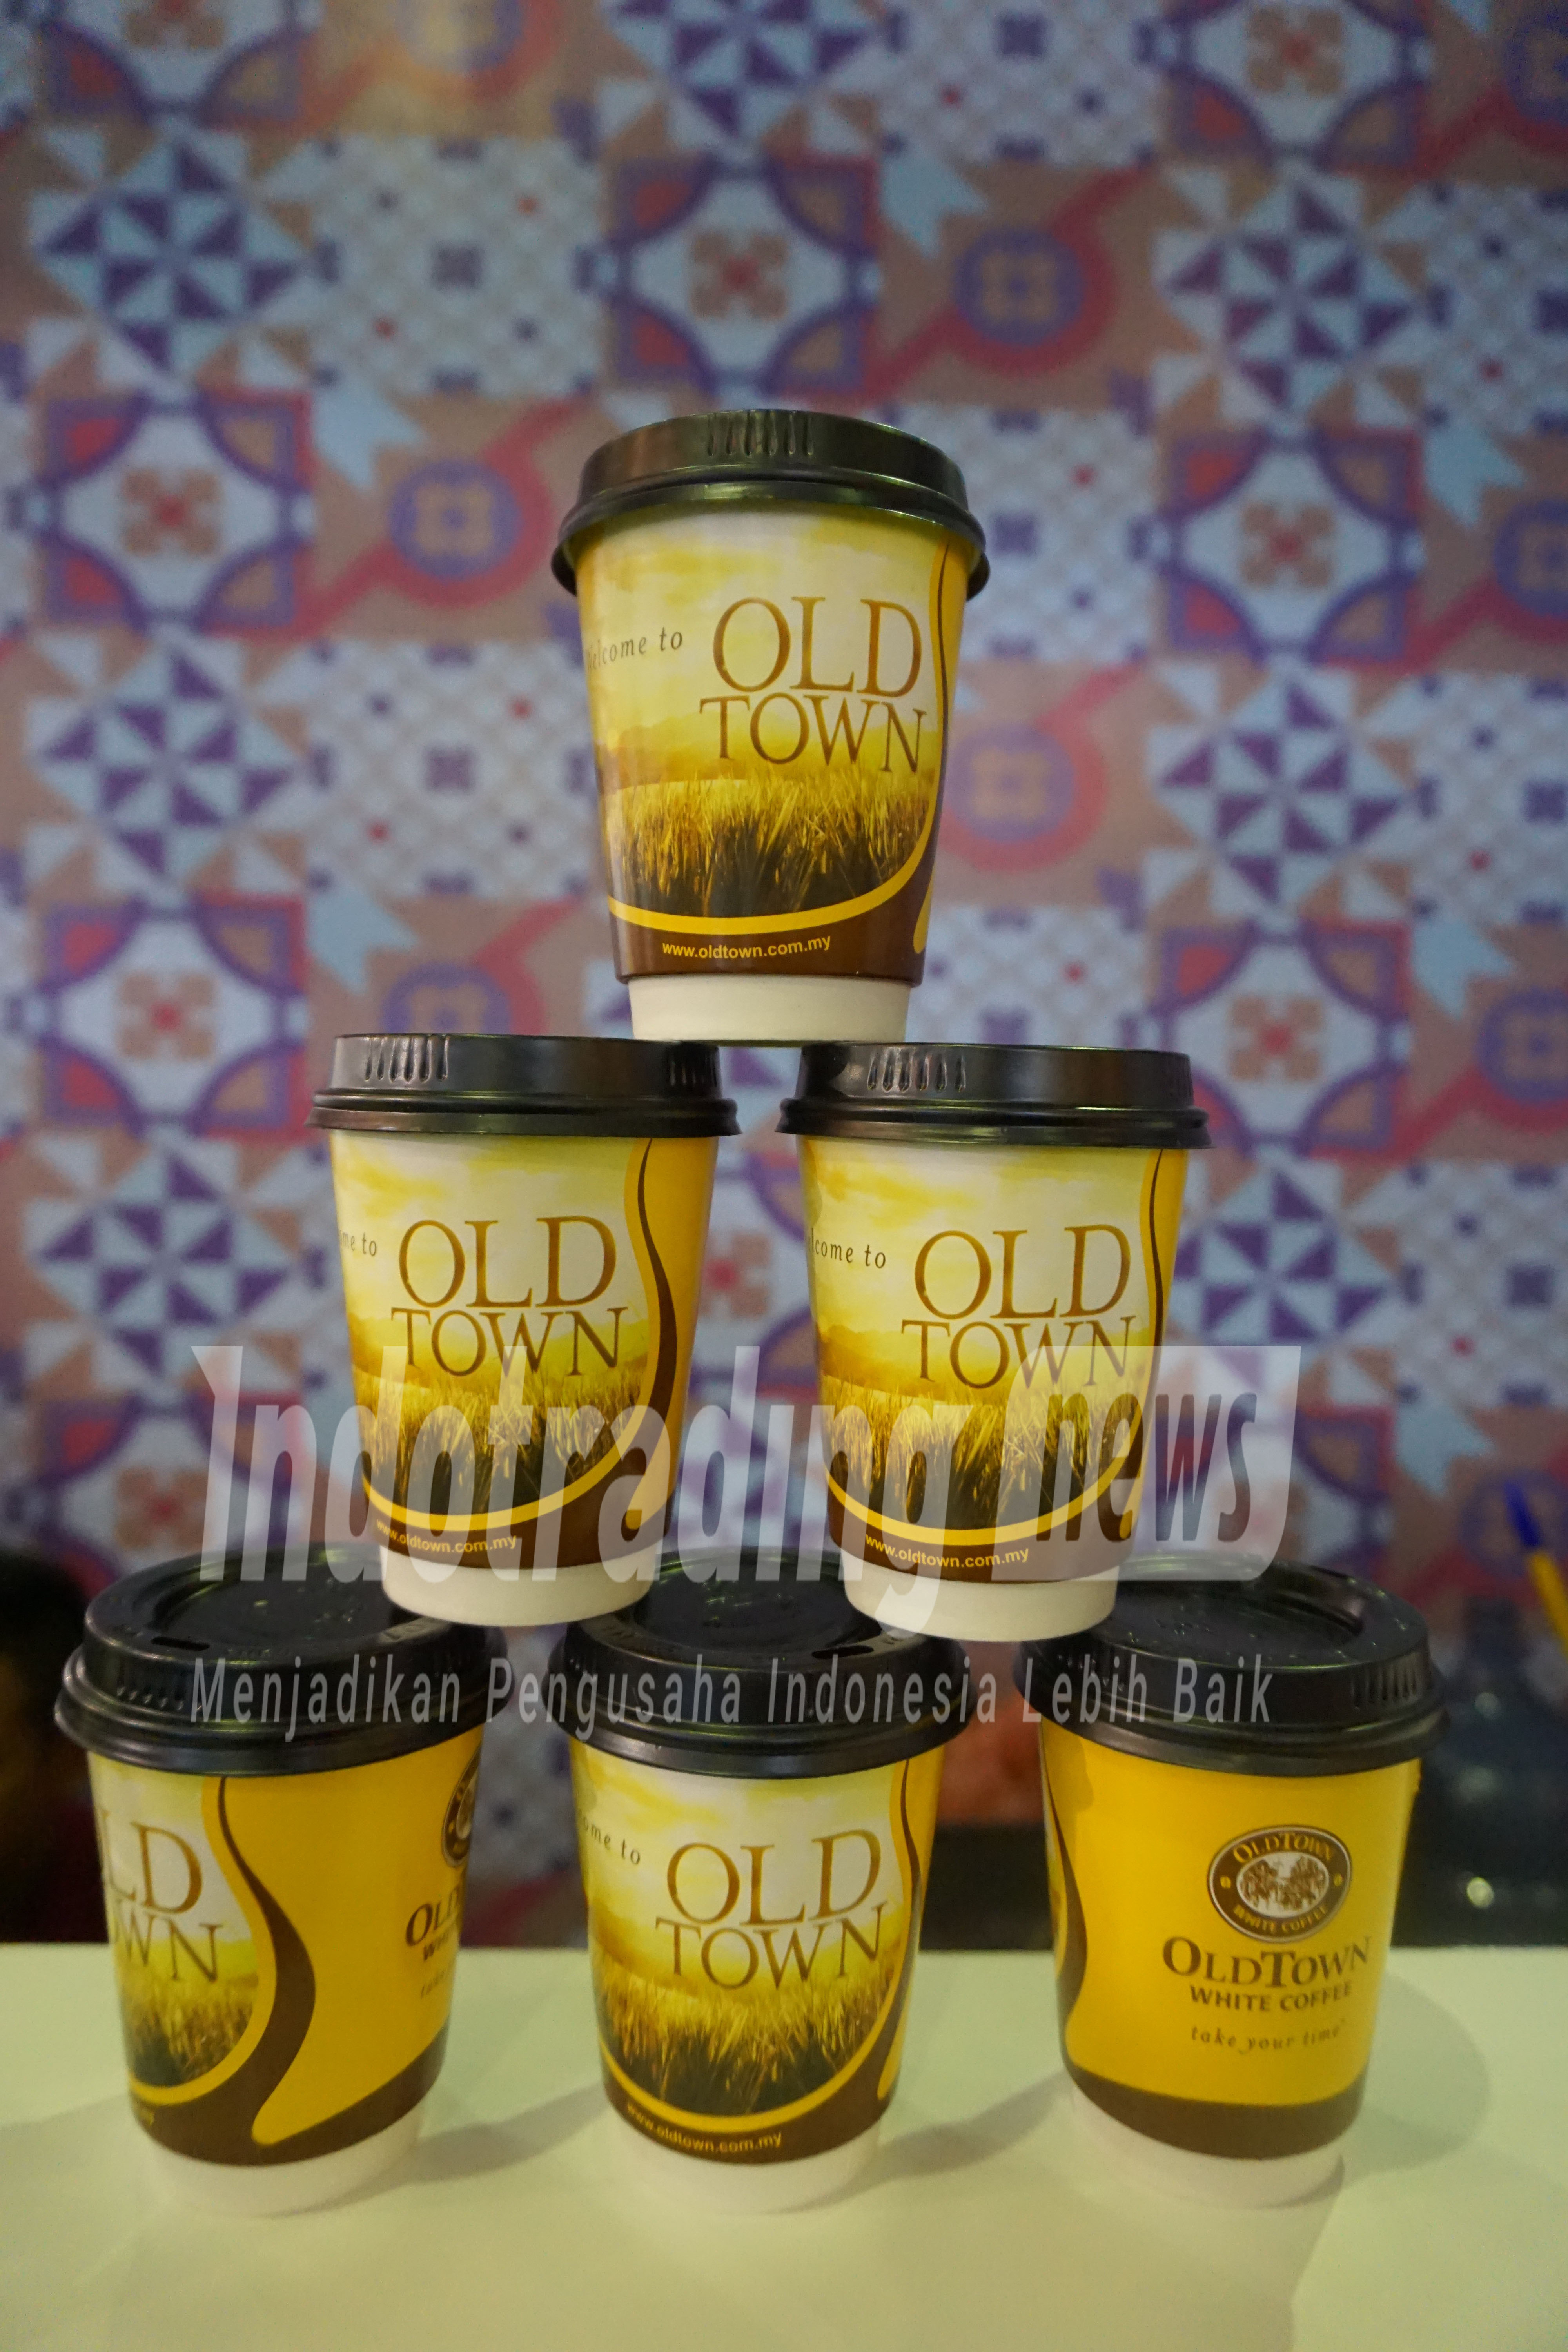 Foto: Menu white coffee di Oldtown White Coffee /Dok: indotrading.com